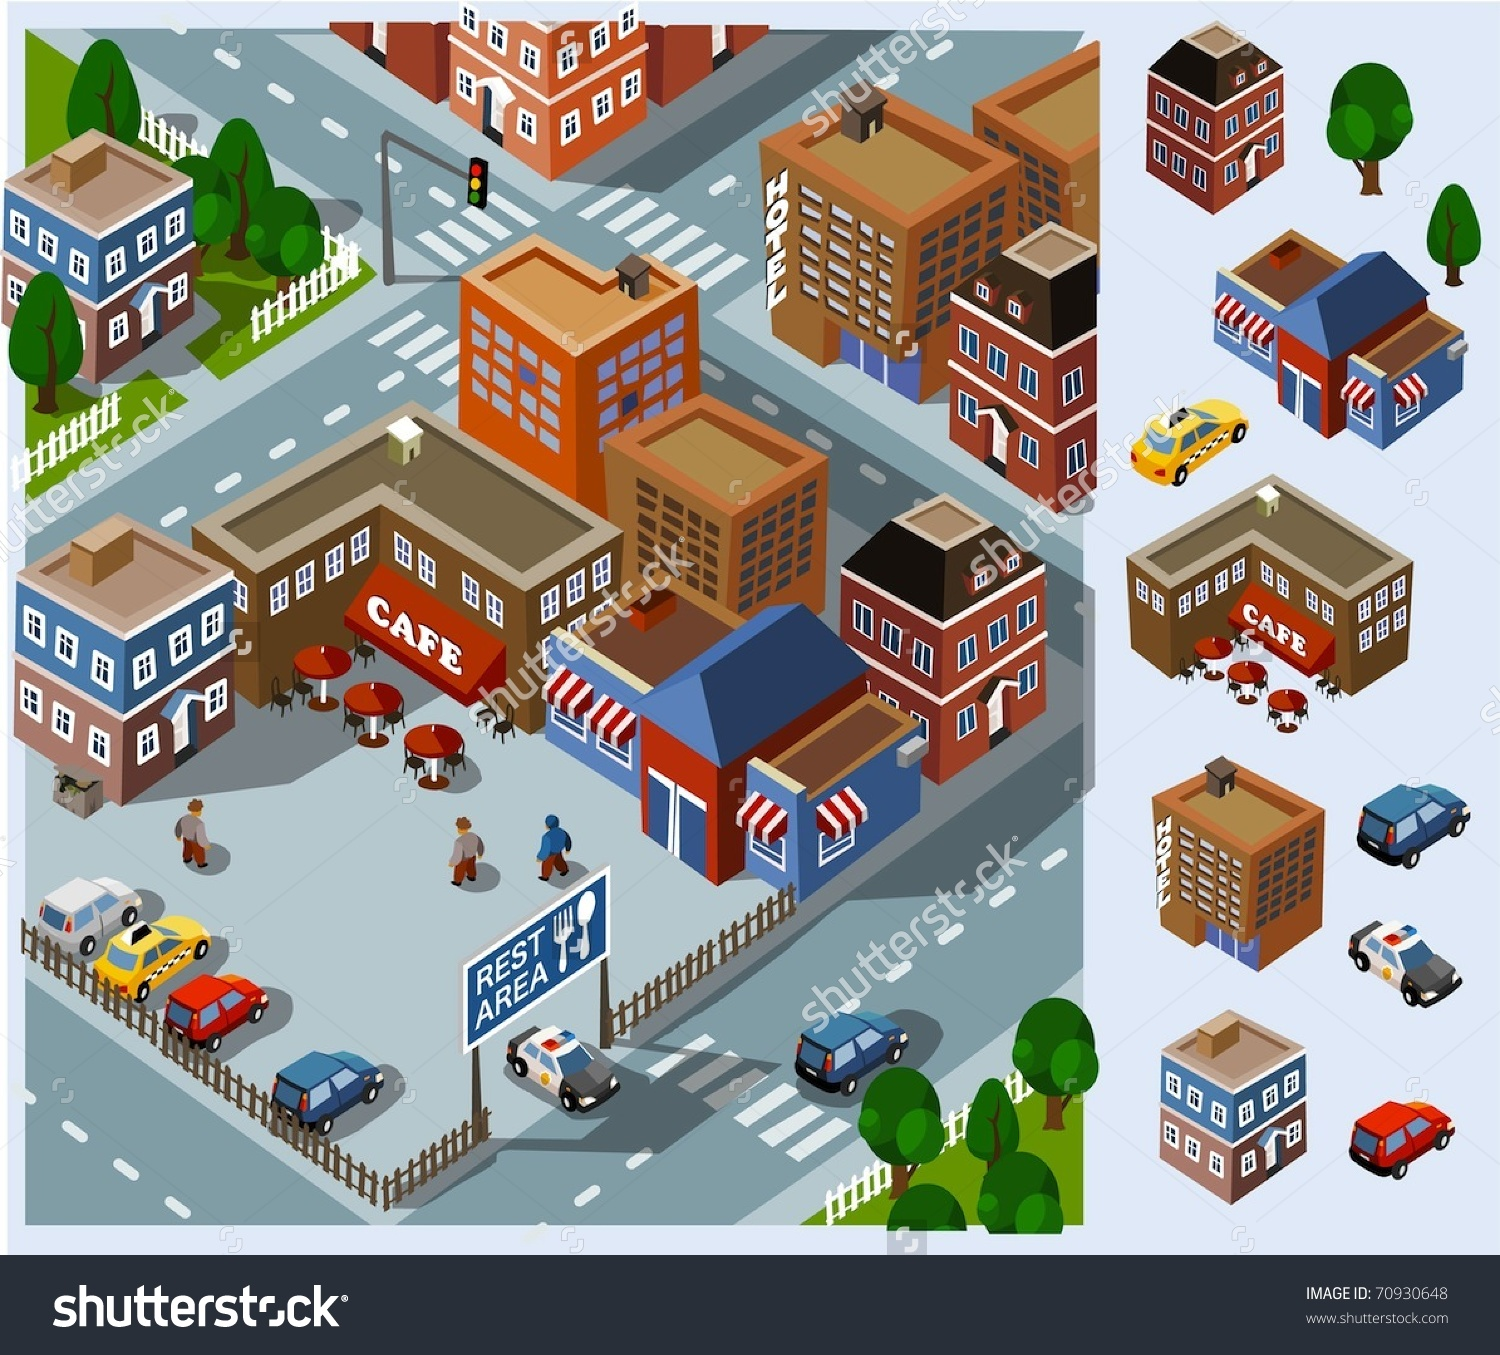 Areas clipart.